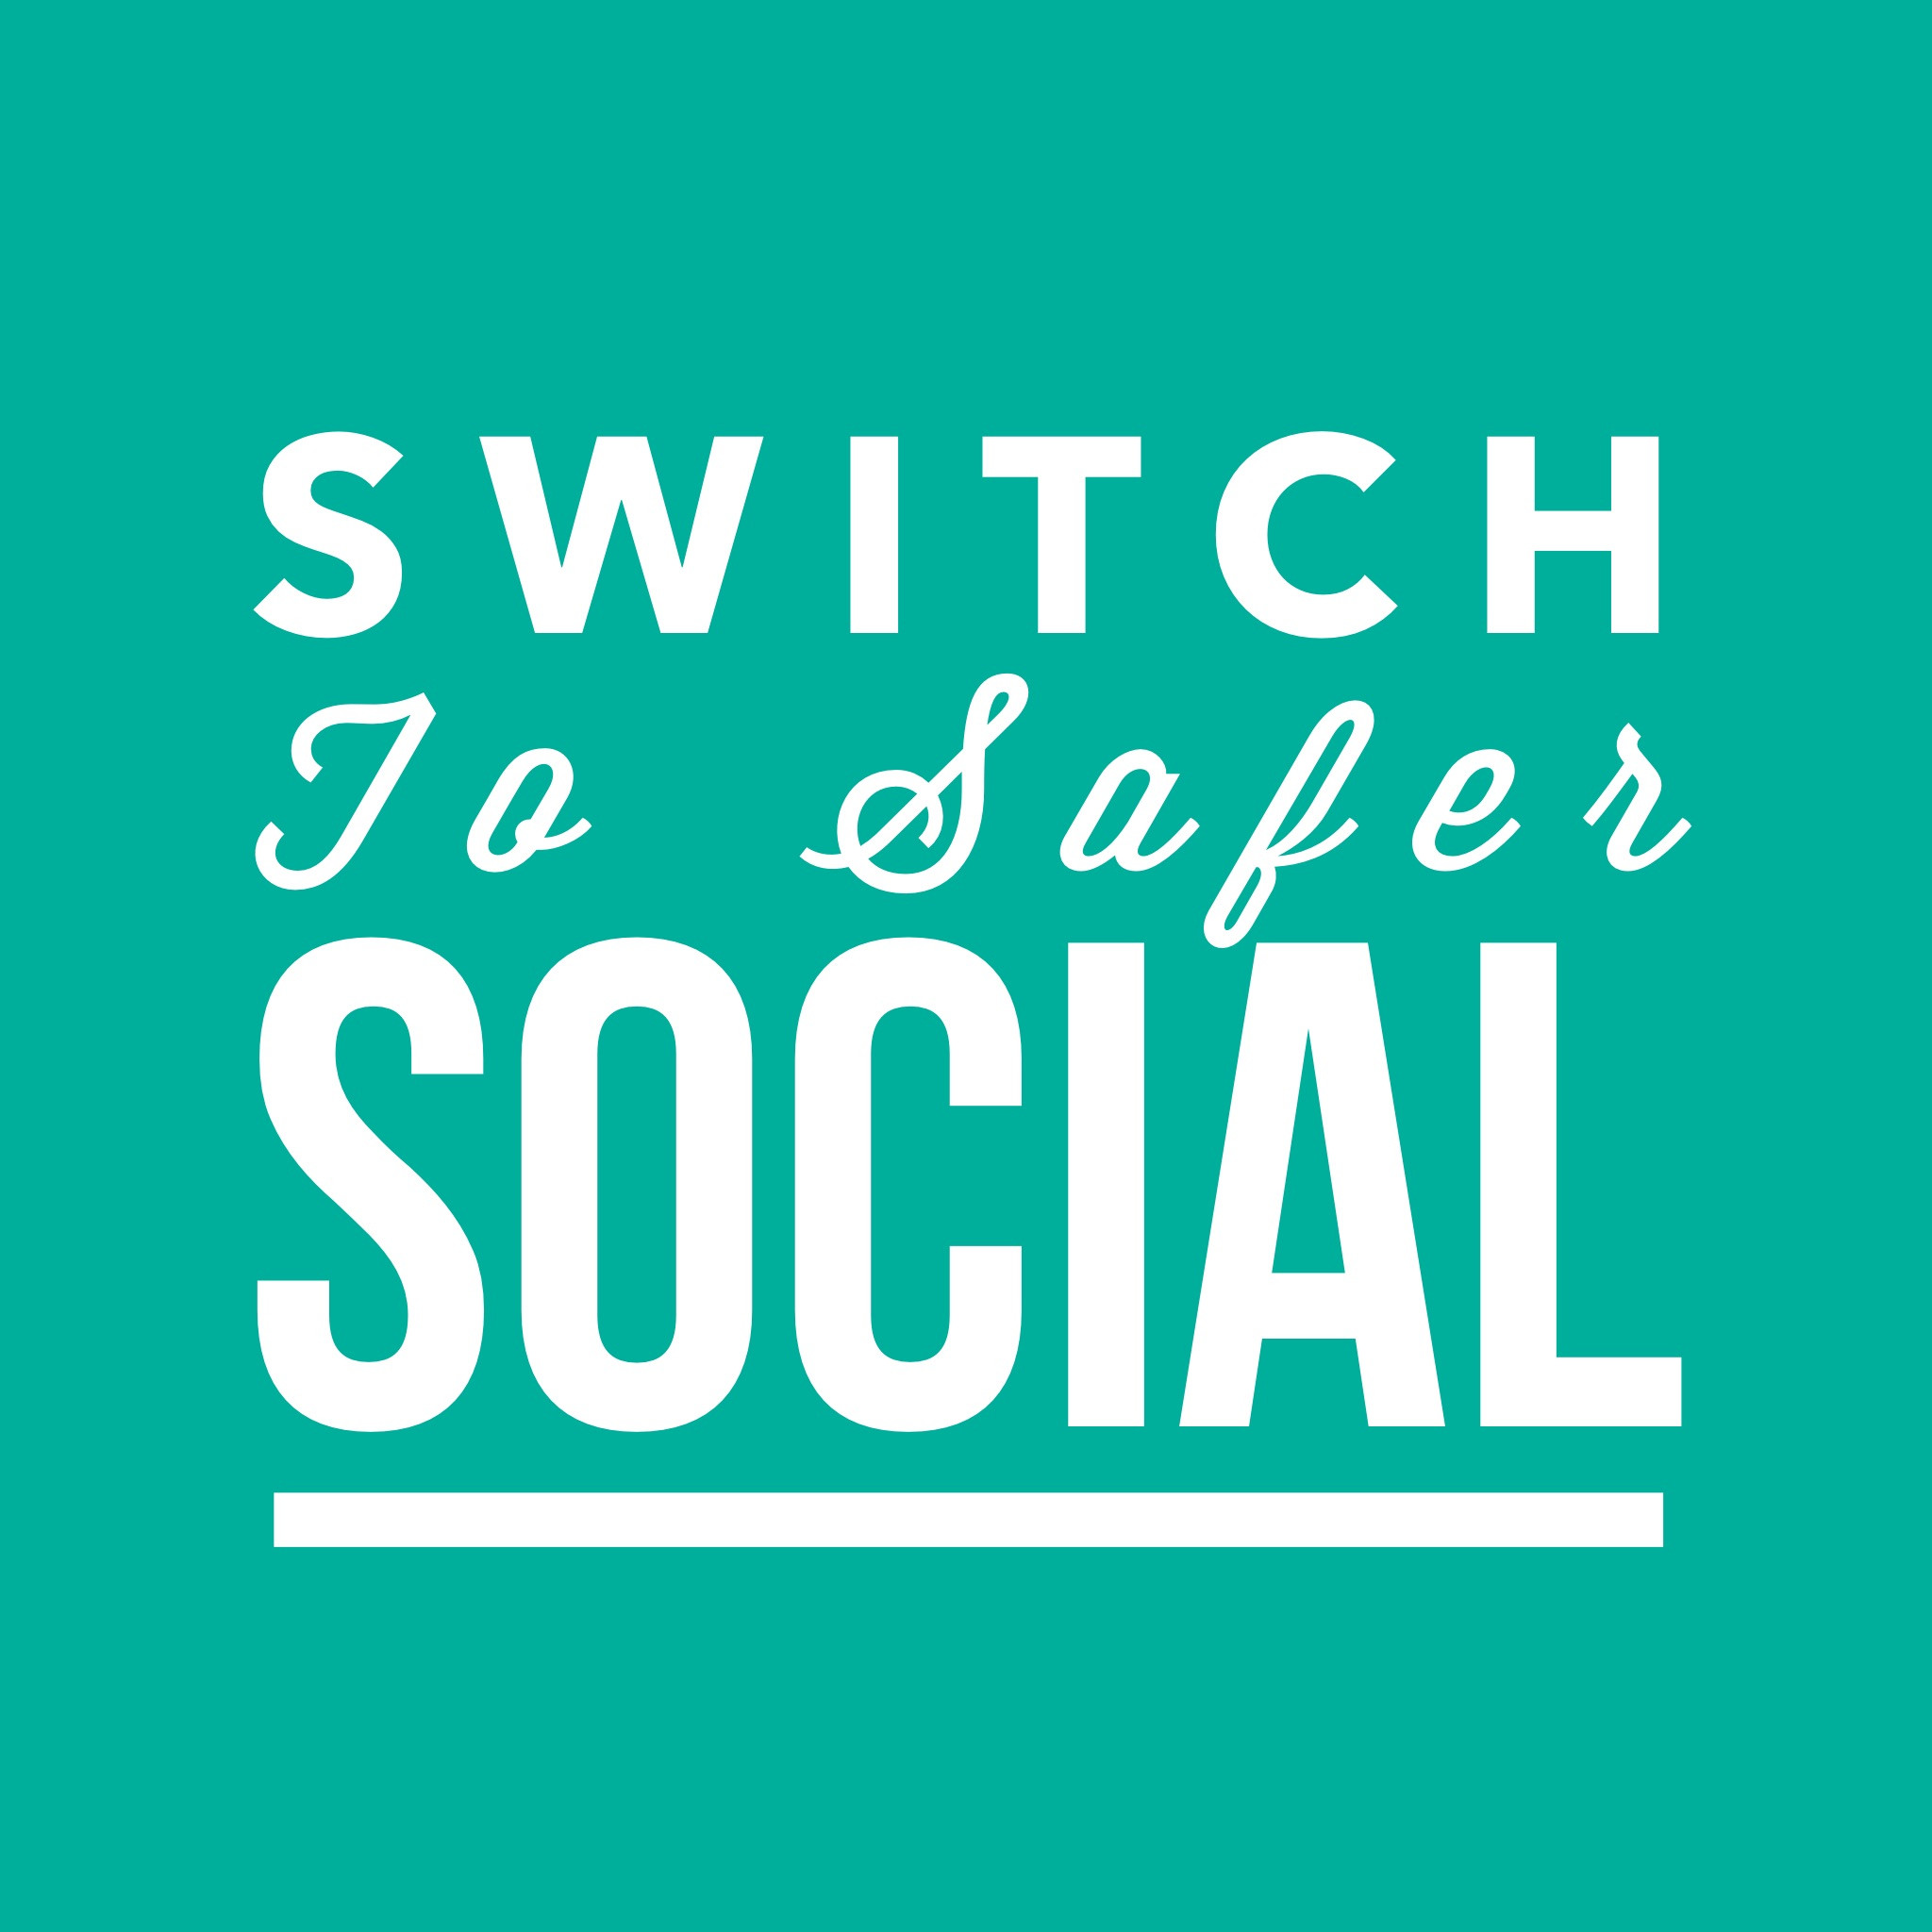 Switch To Safer Social